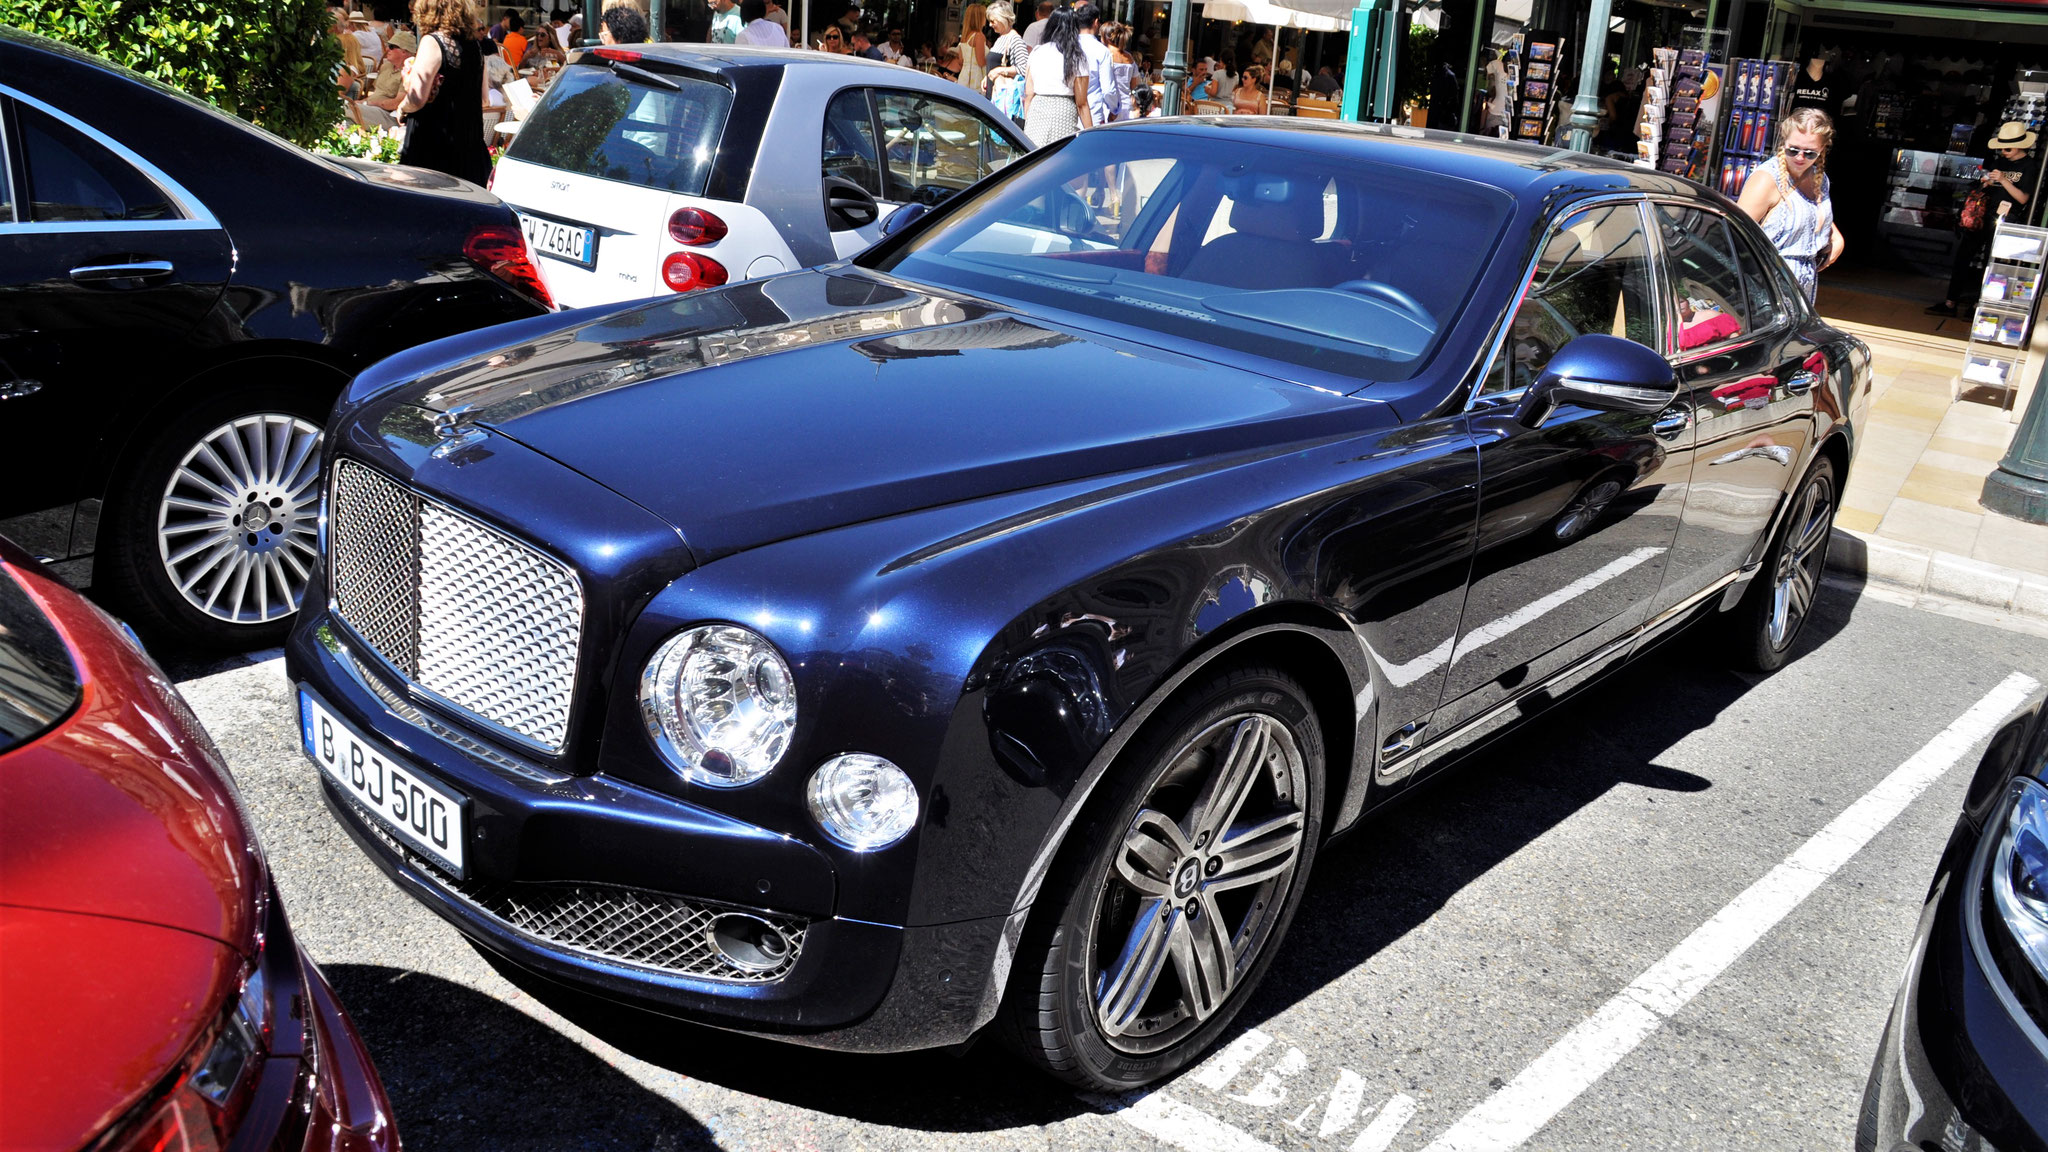 Bentley Mulsanne - B-BJ-500